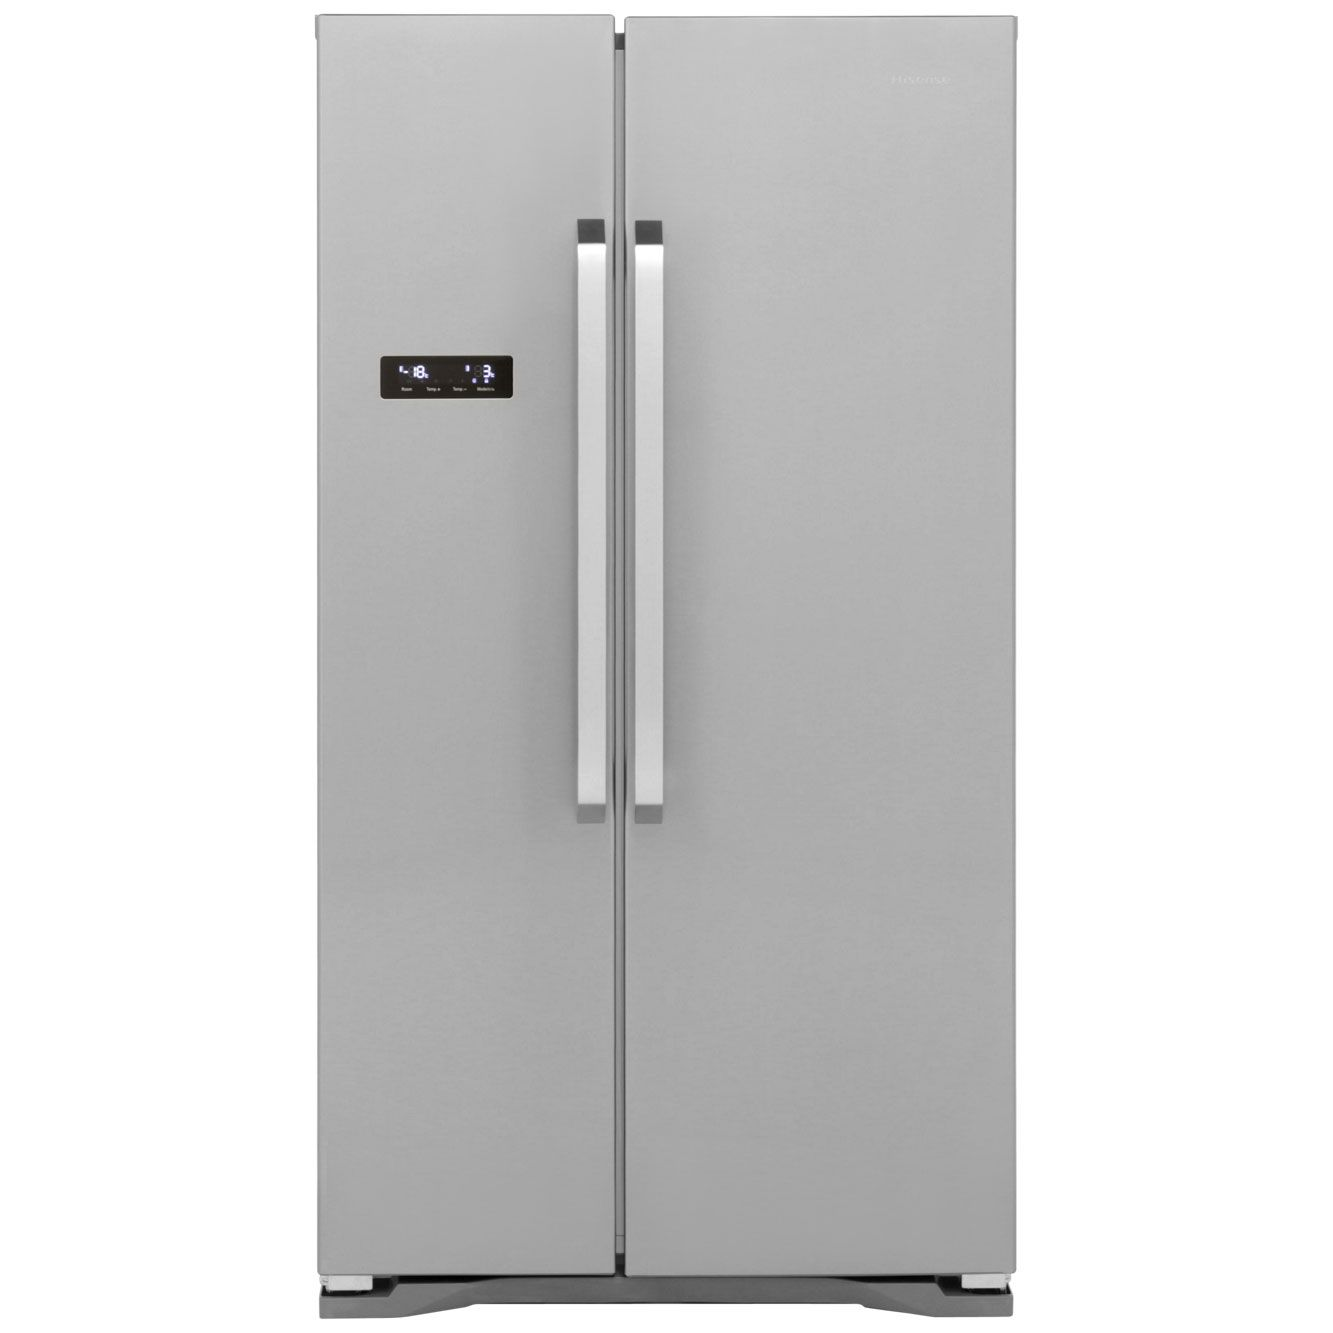 cheap www ao com product rs731n4ac1 hisense american fridge cheap www ao com product rs731n4ac1 hisense american fridge      rh   pinterest com